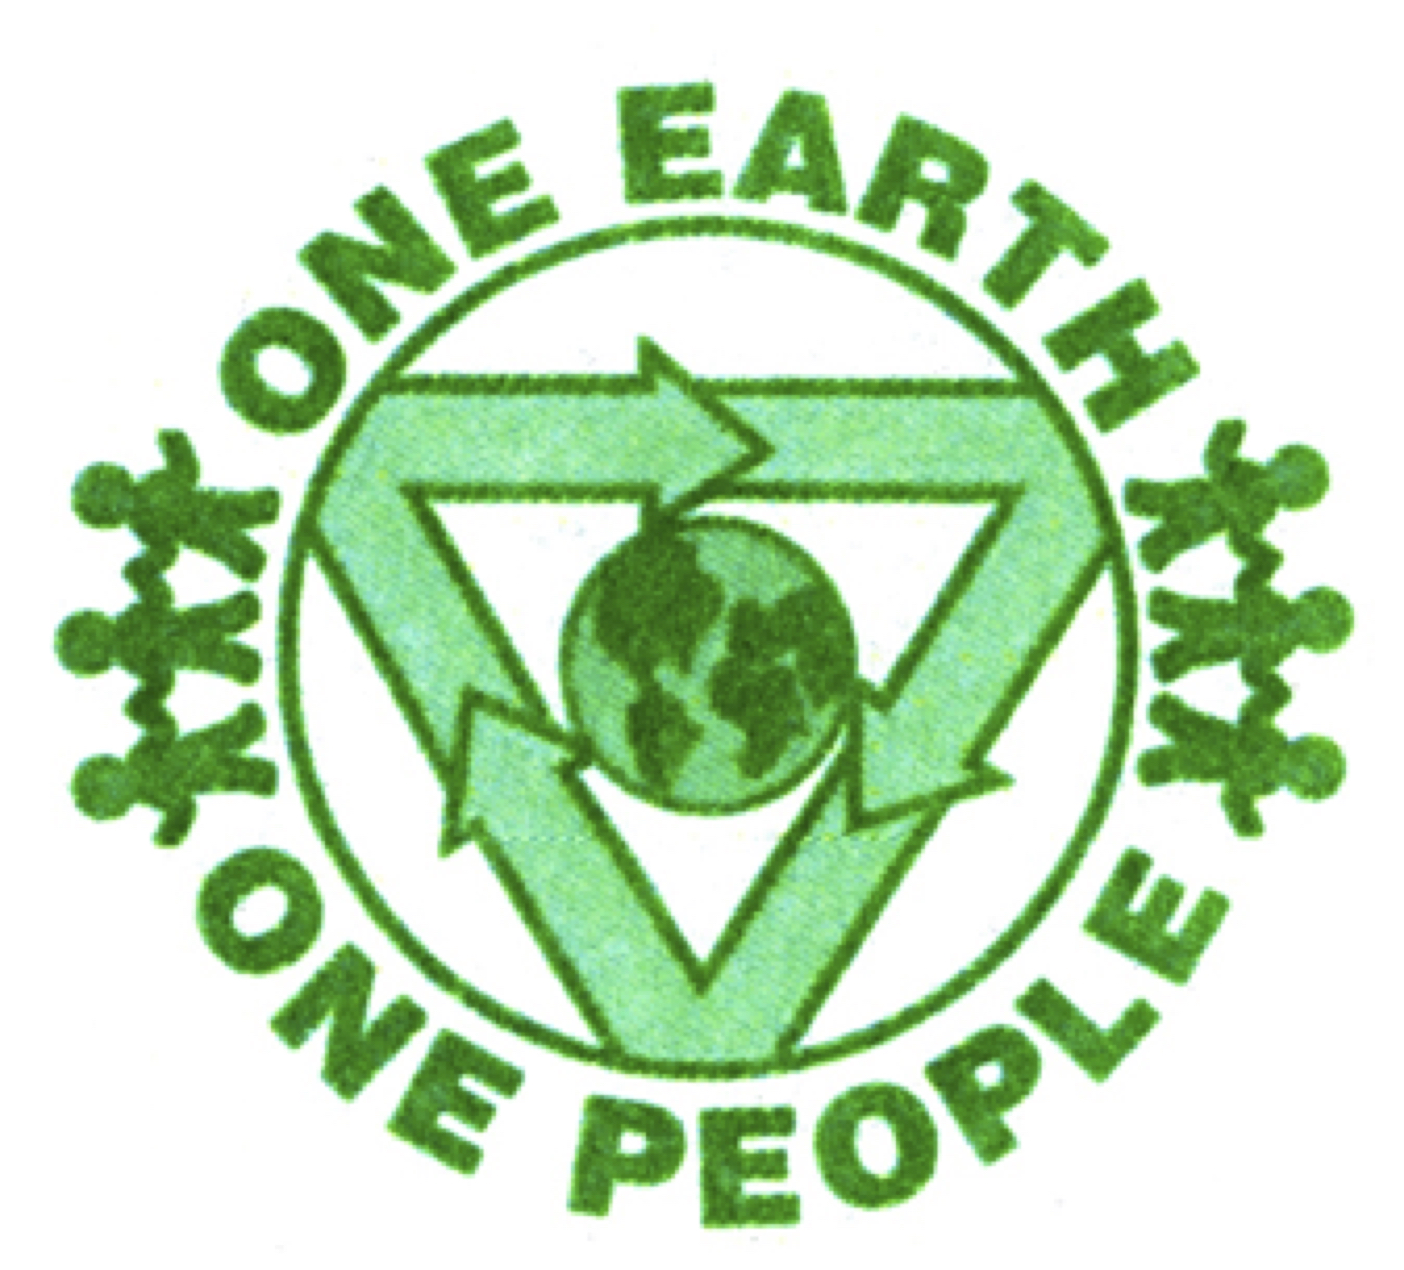 One Earth One People